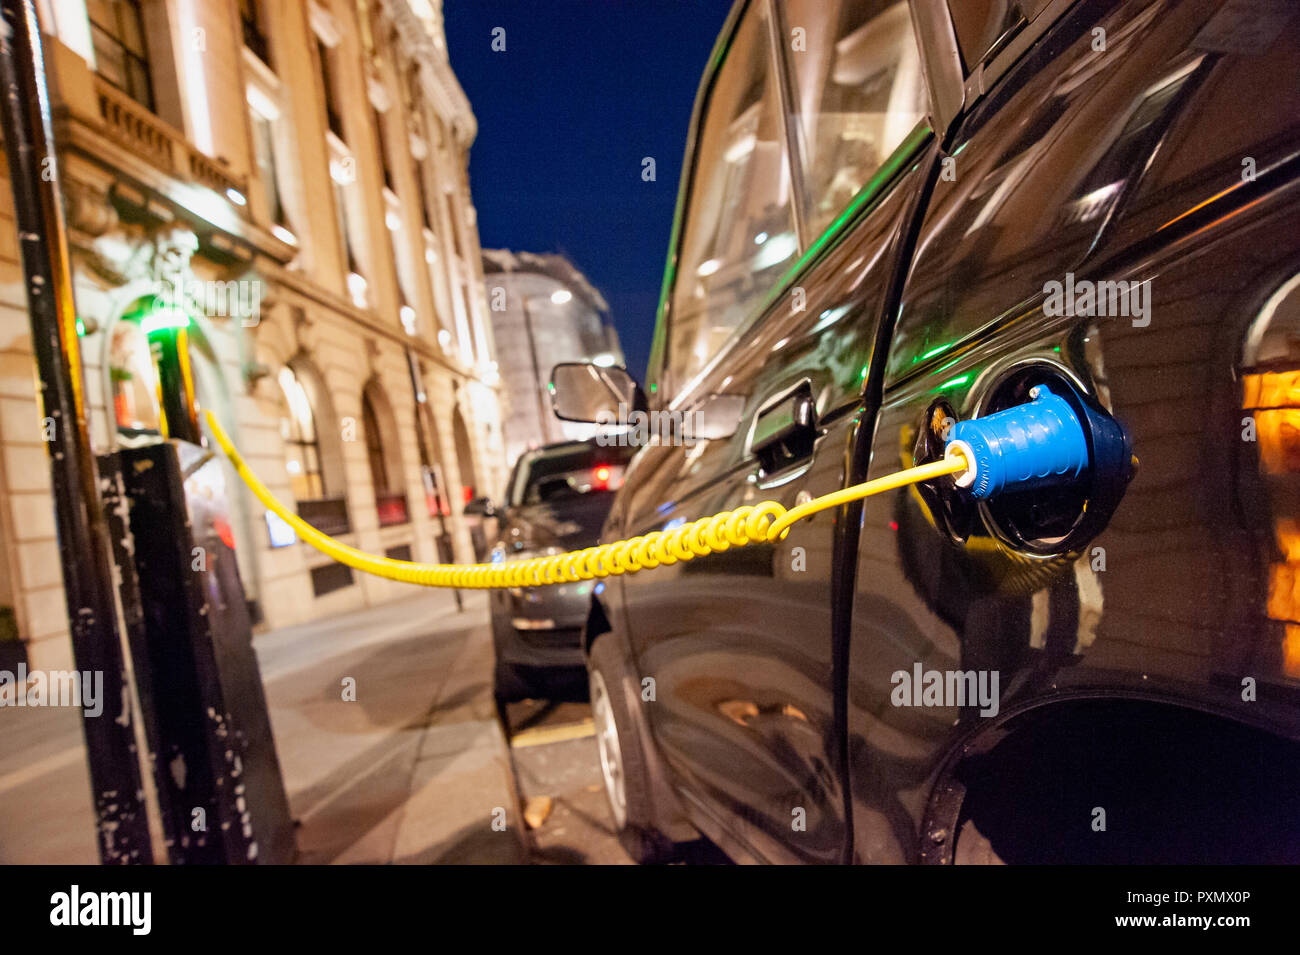 Electric car charging up on a city street charge facility, UK, London Stock Photo